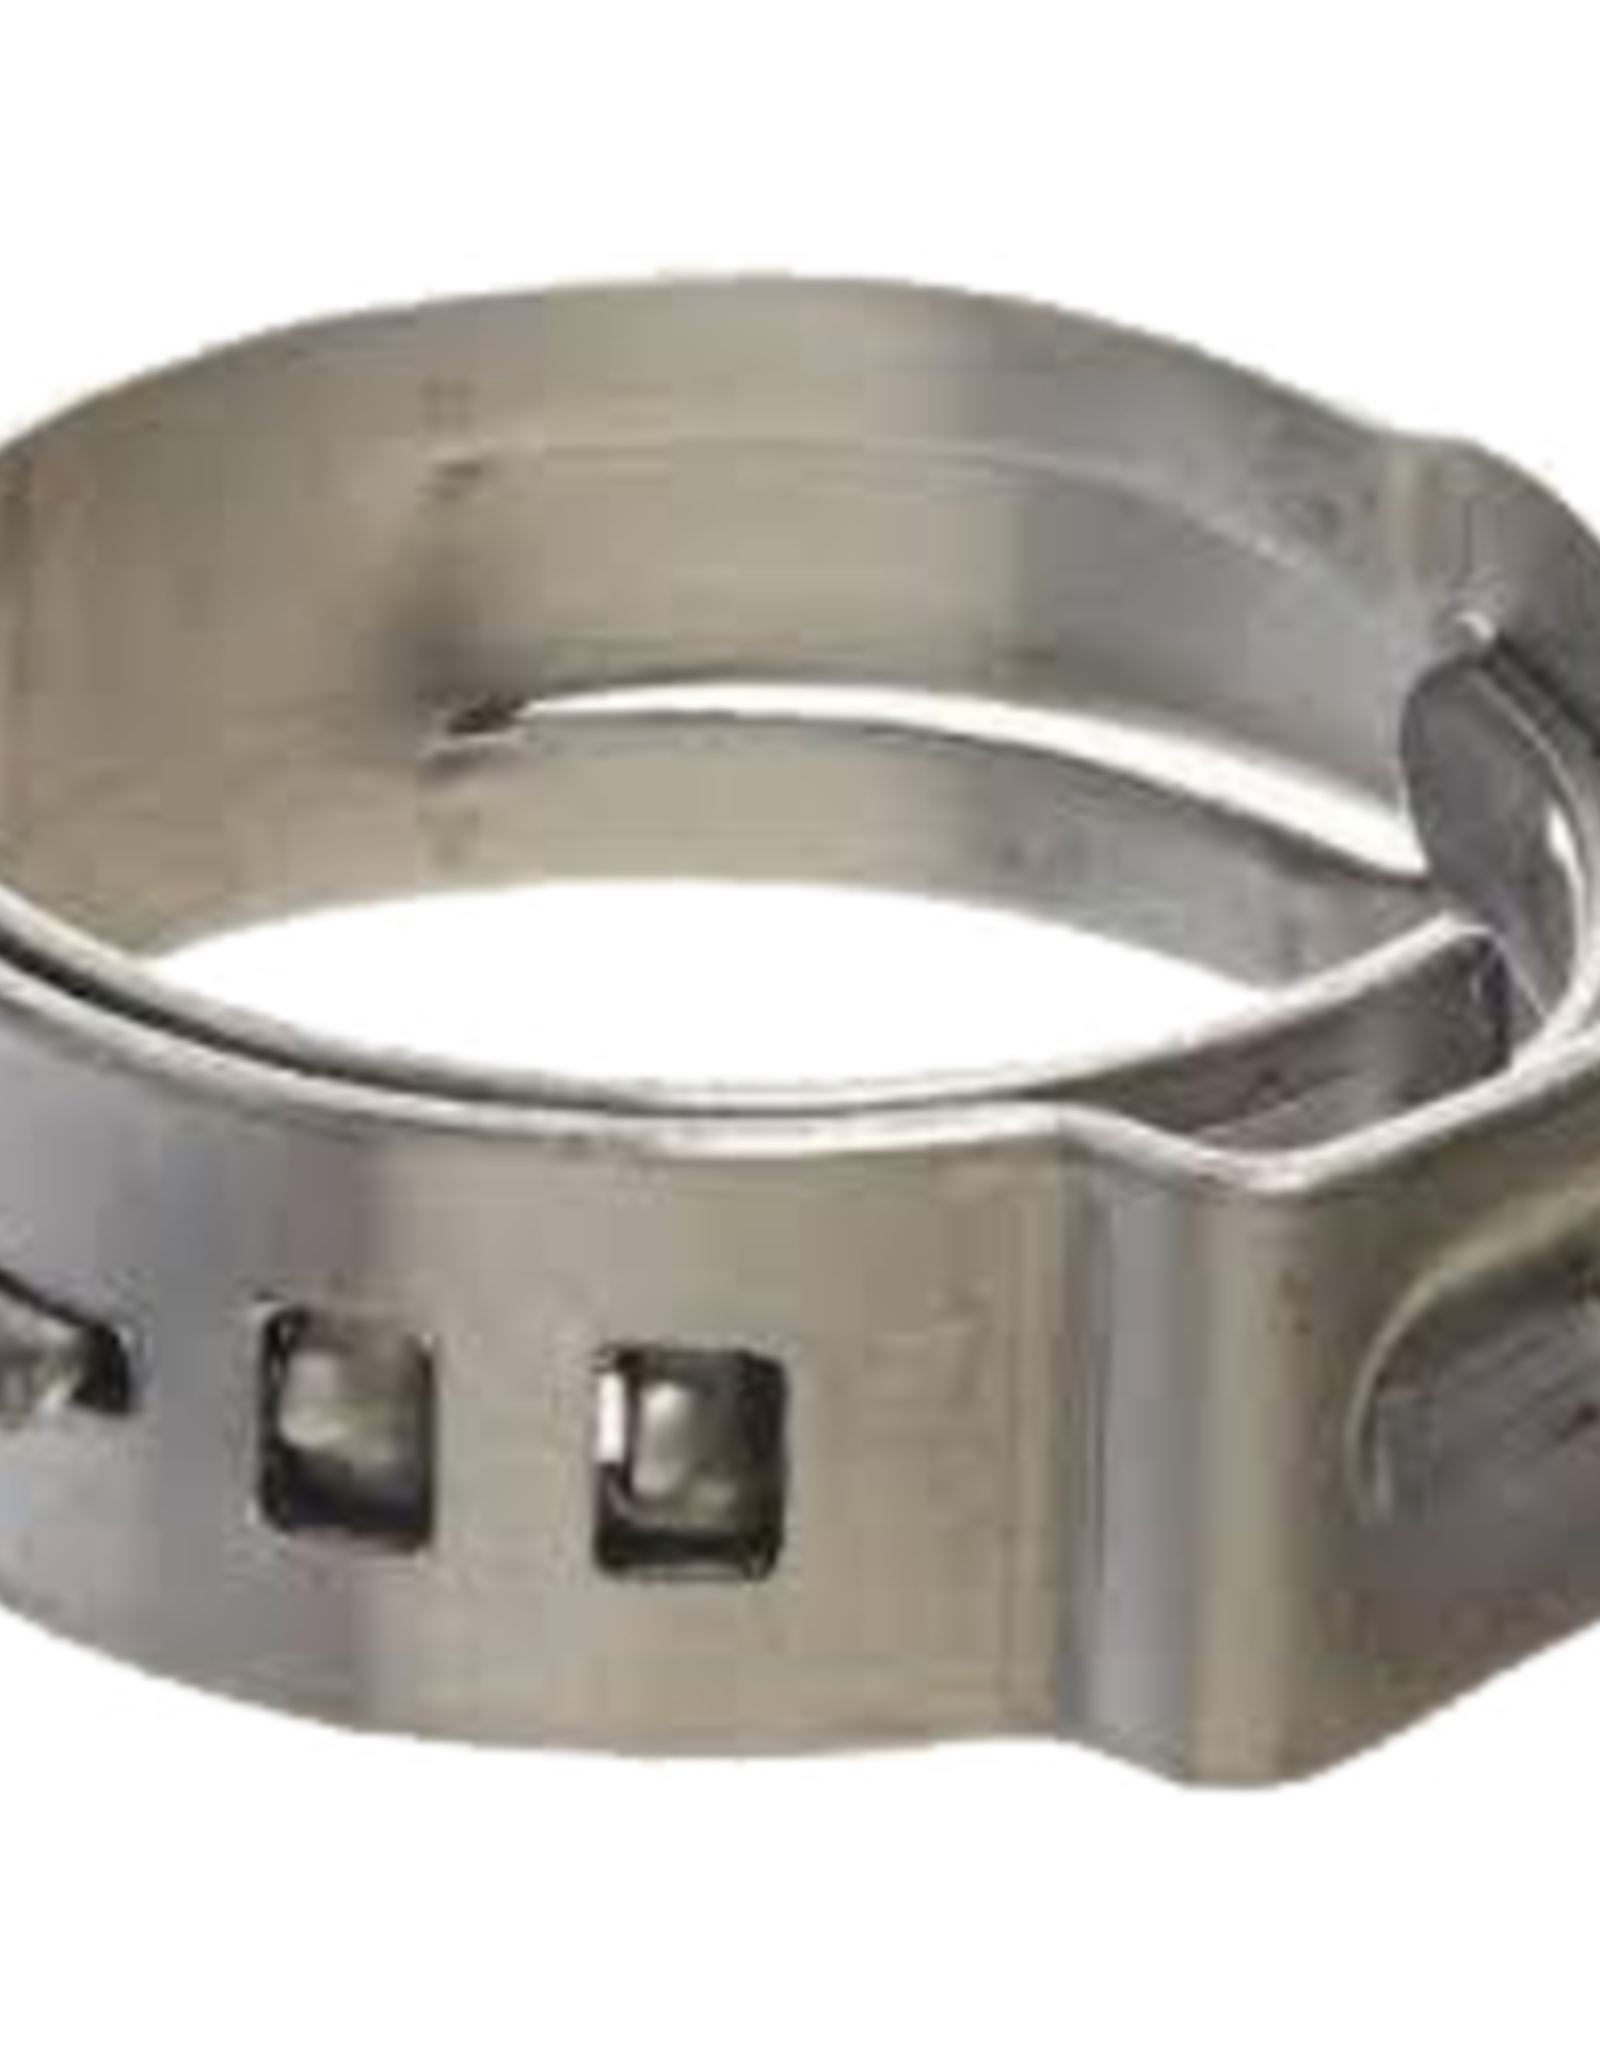 Stepless Hose Clamp - 3/4 in. OD Tubing